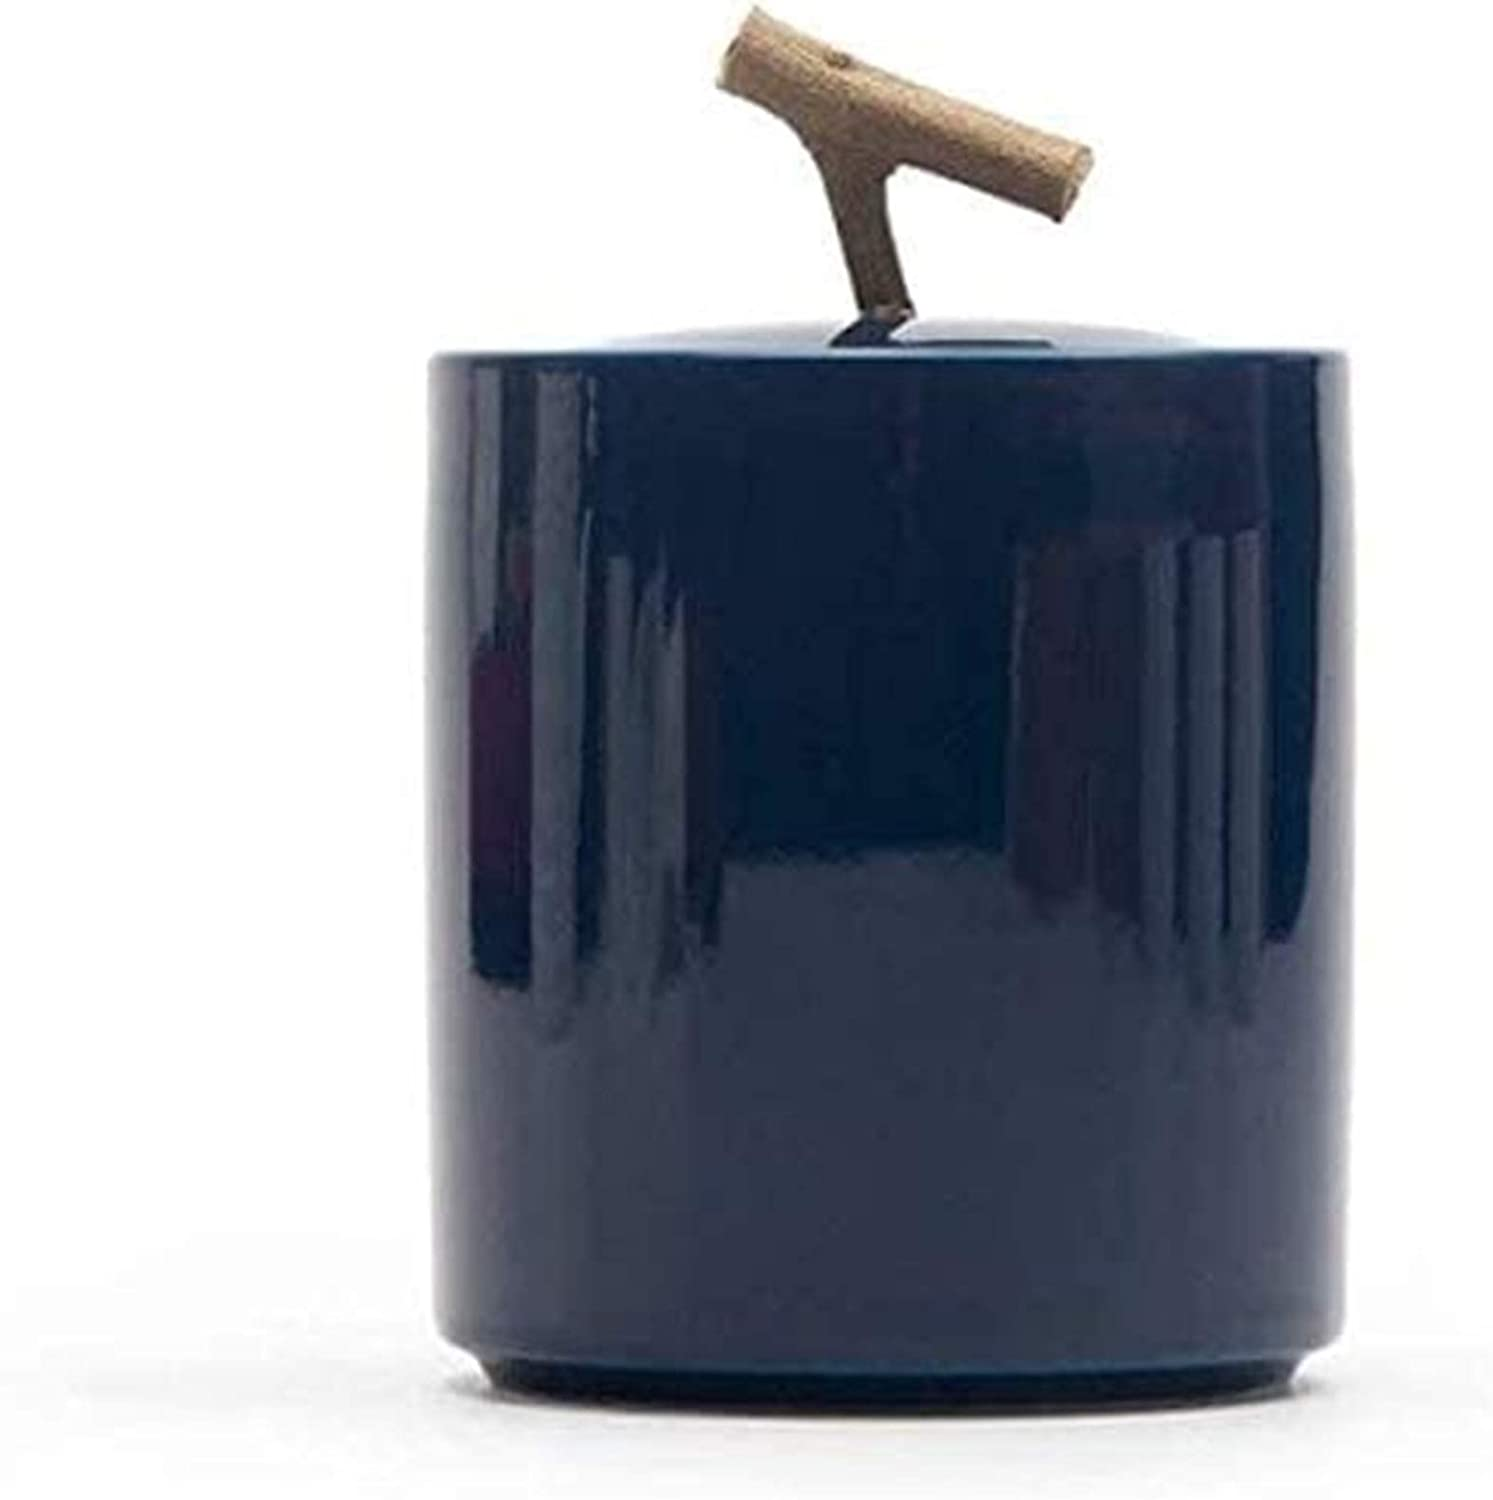 Max 77% OFF lpzsmd Urns for Ashes Urn Max 67% OFF Pet Dogs Mini Cremation